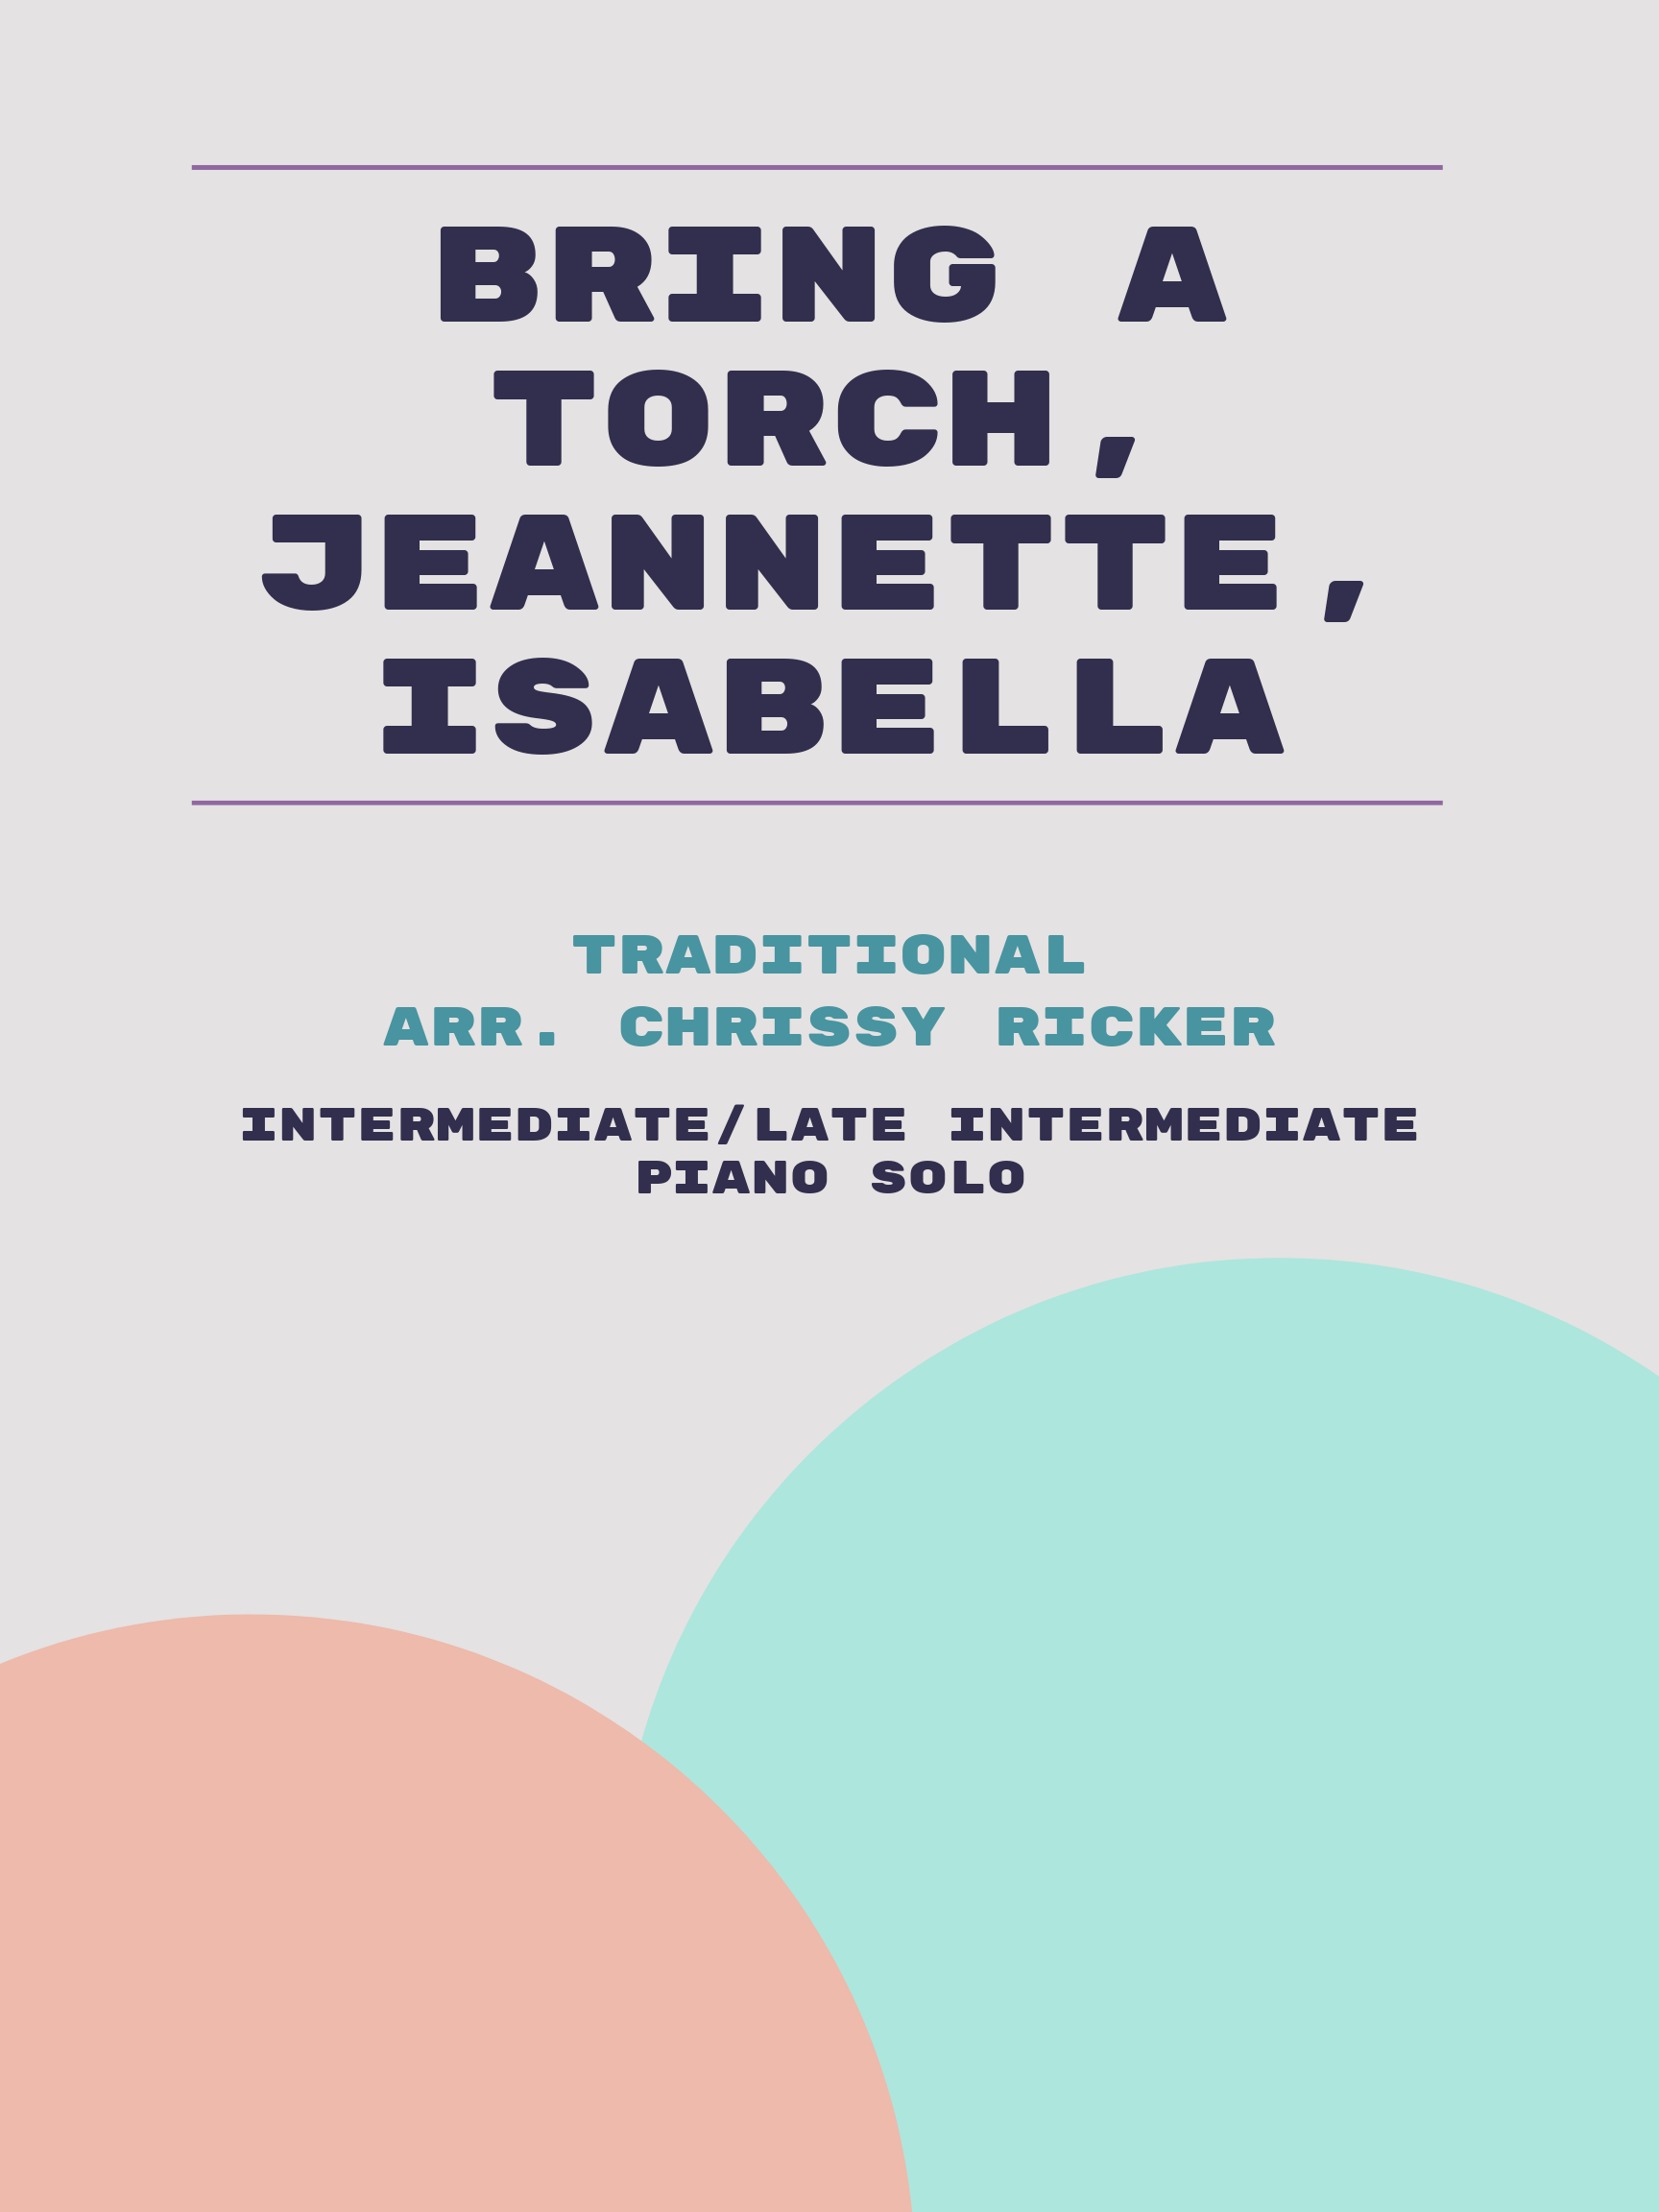 Bring a Torch, Jeannette, Isabella by Traditional